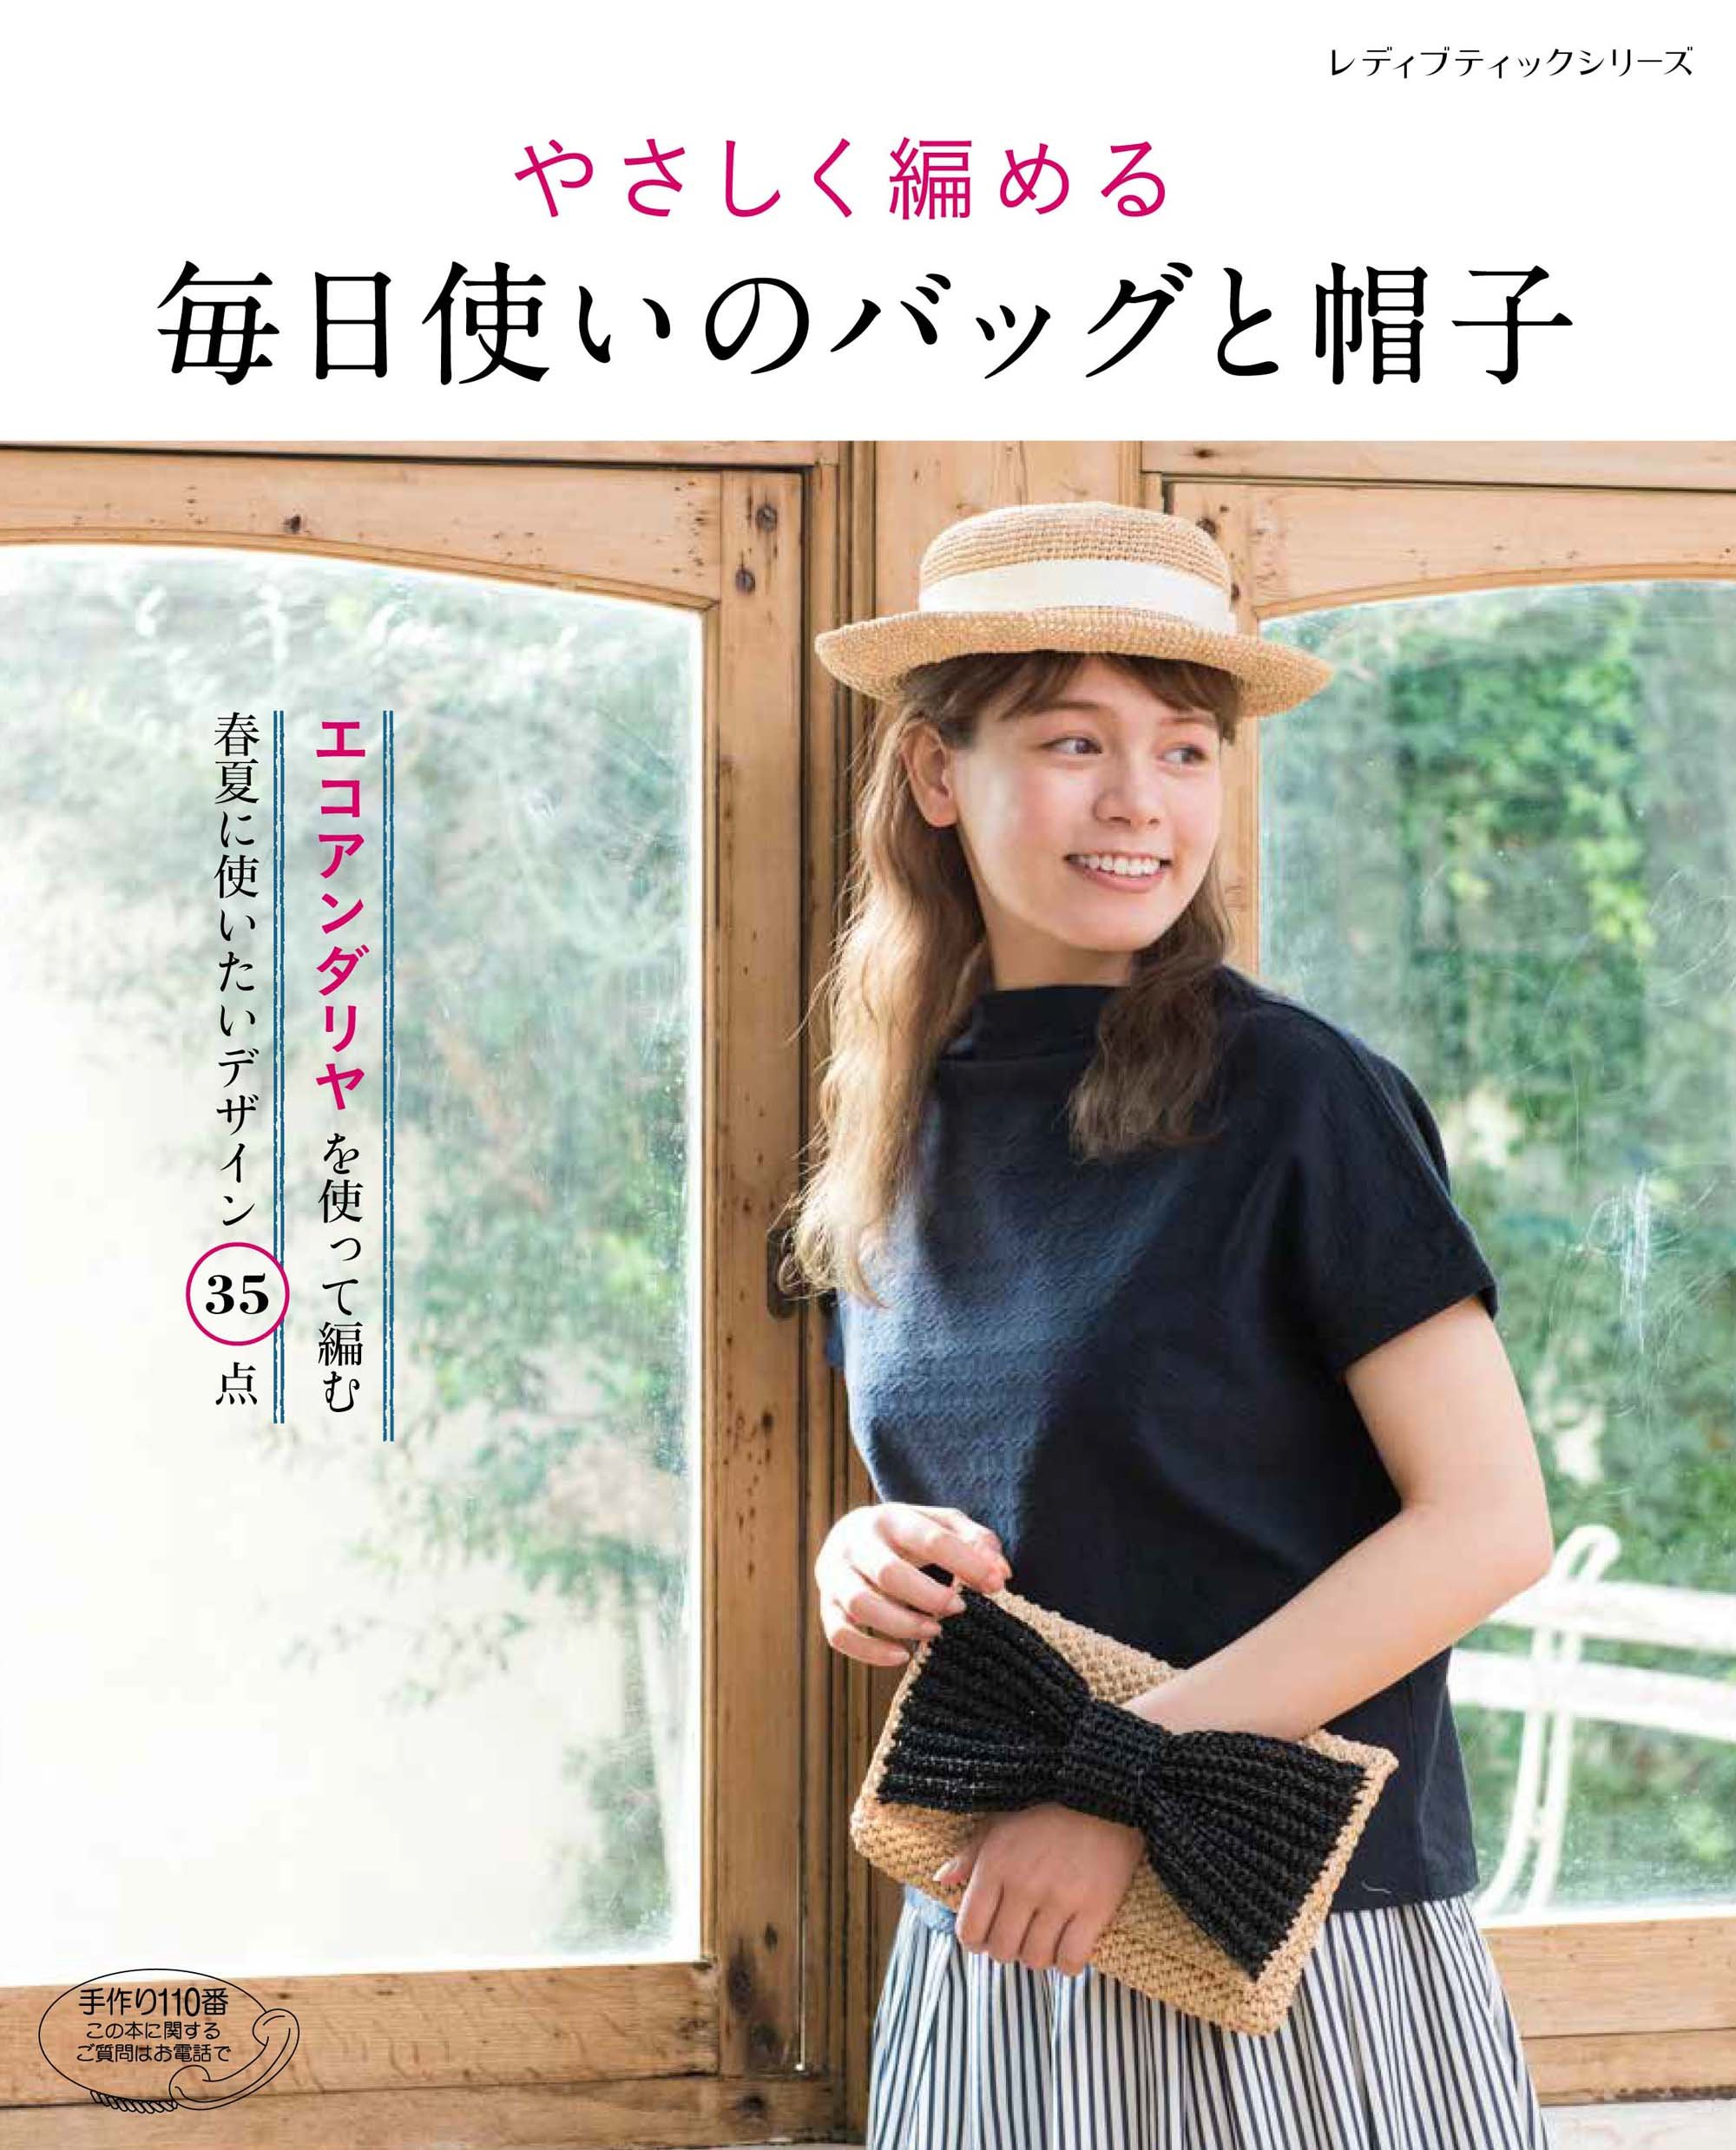 Gently Amer daily Tsukai of the bag and a hat